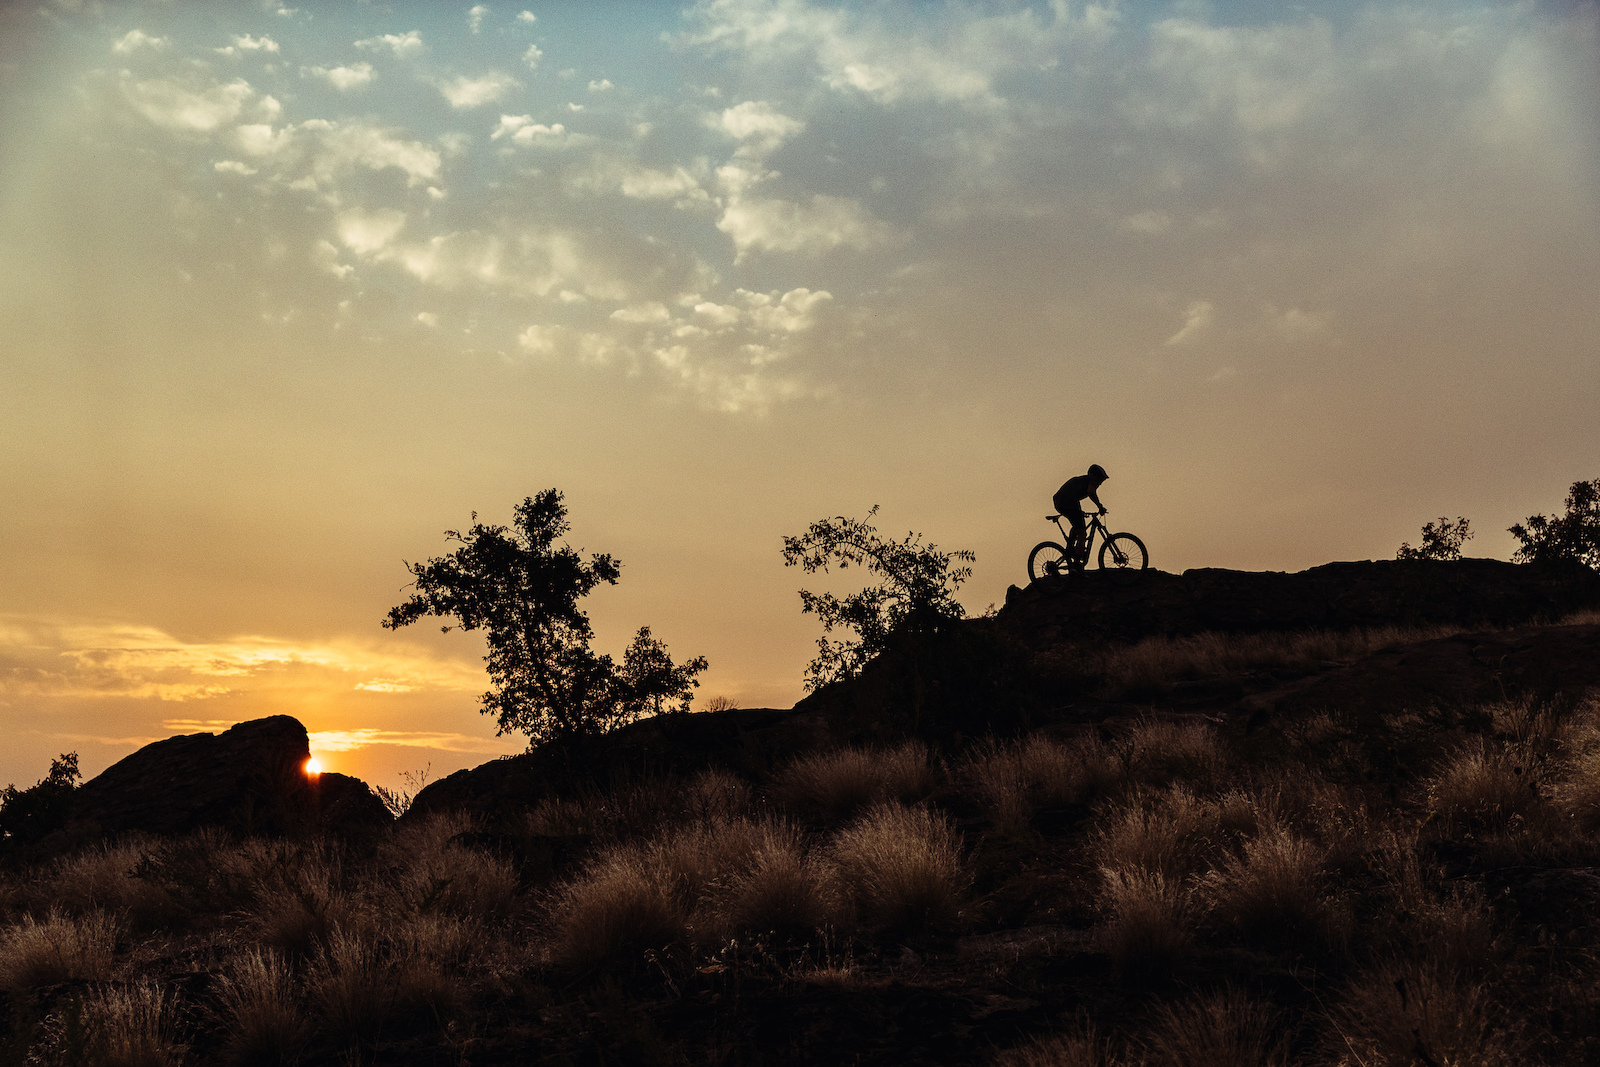 Just minutes from downtown Boise Table Rock offers up short technical laps that are perfect for afterwork sunset sessions.